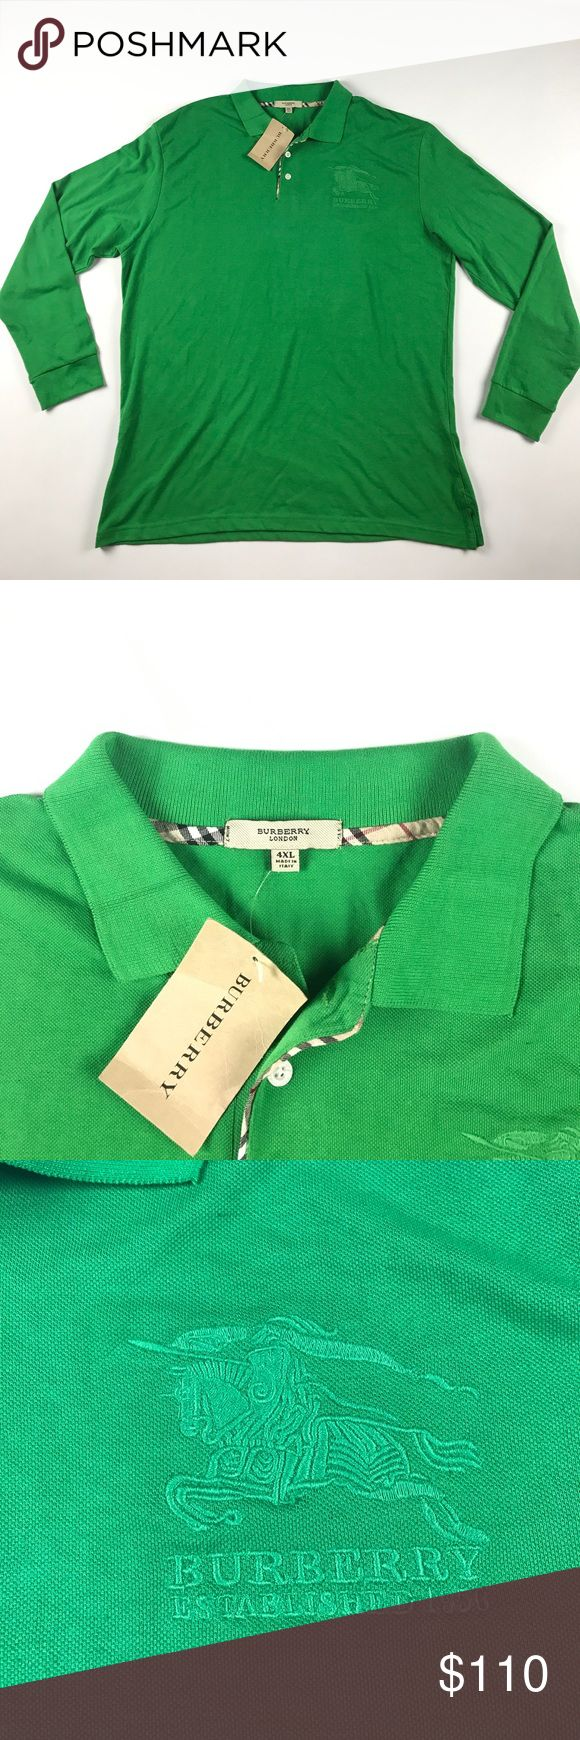 New Burberry London 4XL Long Sleeve Polo Green New with tags. Measures 24 inches pit to pit and 30 inches top to bottom Burberry Shirts Polos